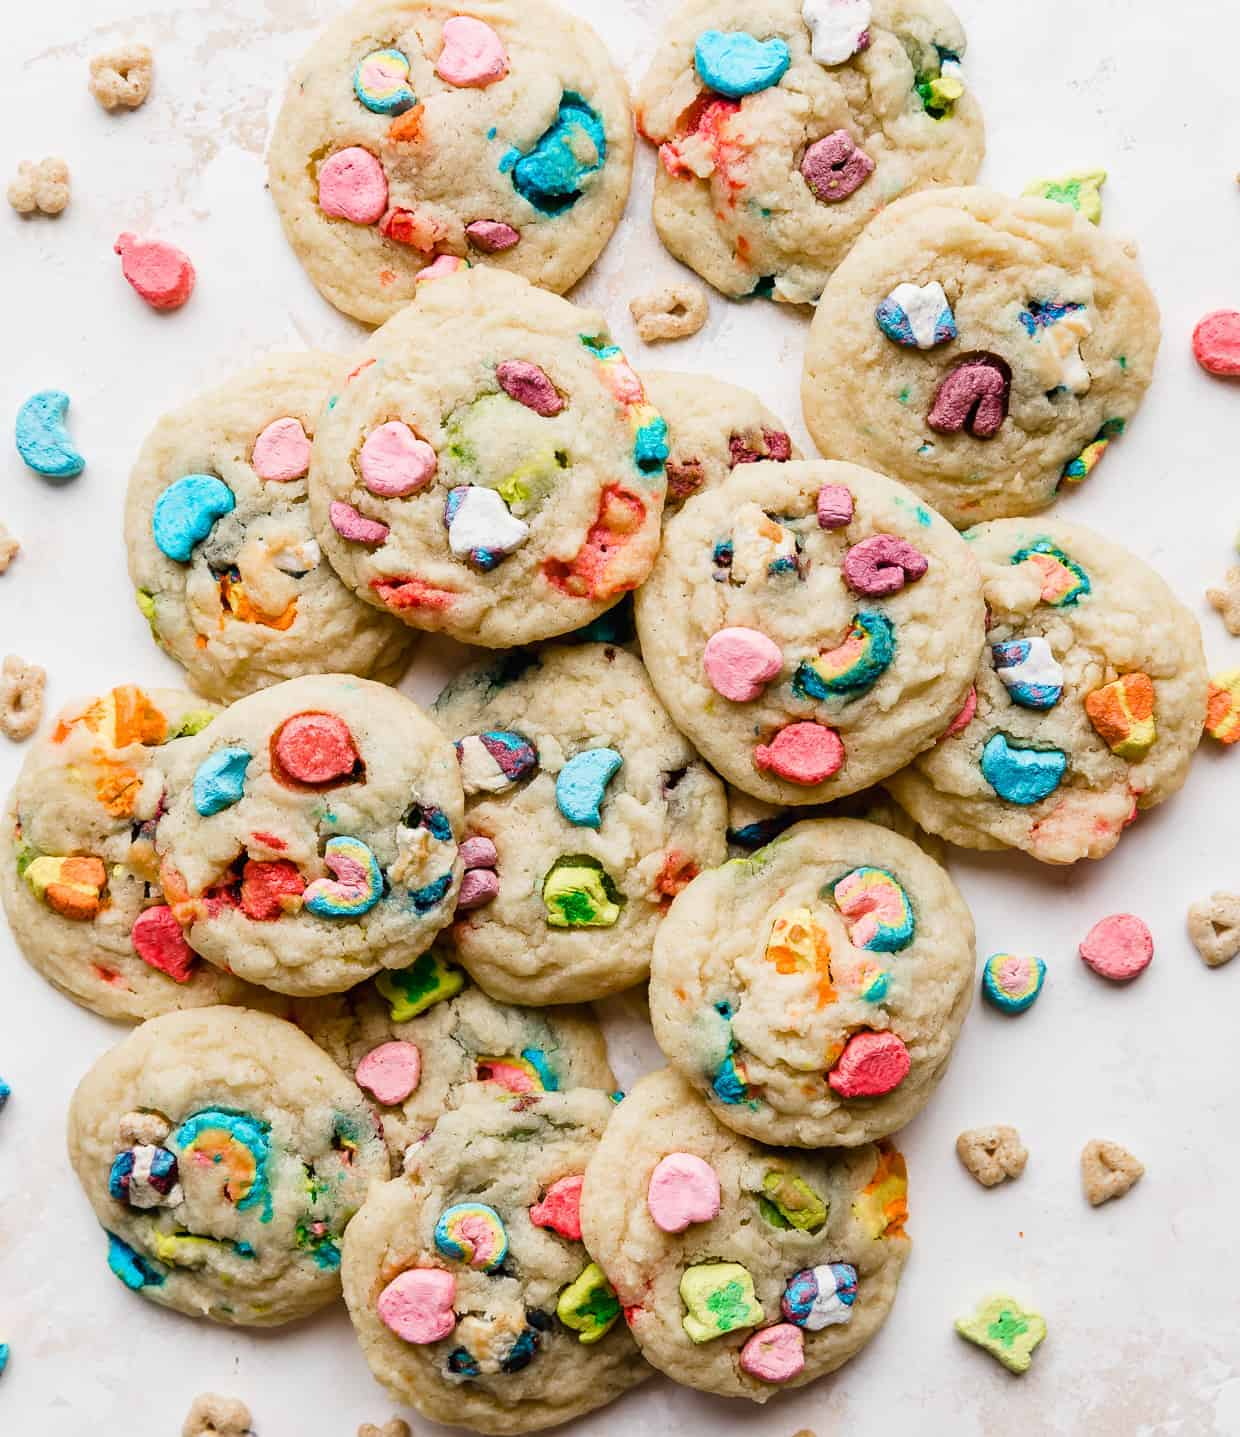 A pile of lucky charms marshmallow loaded cookies on a white background.